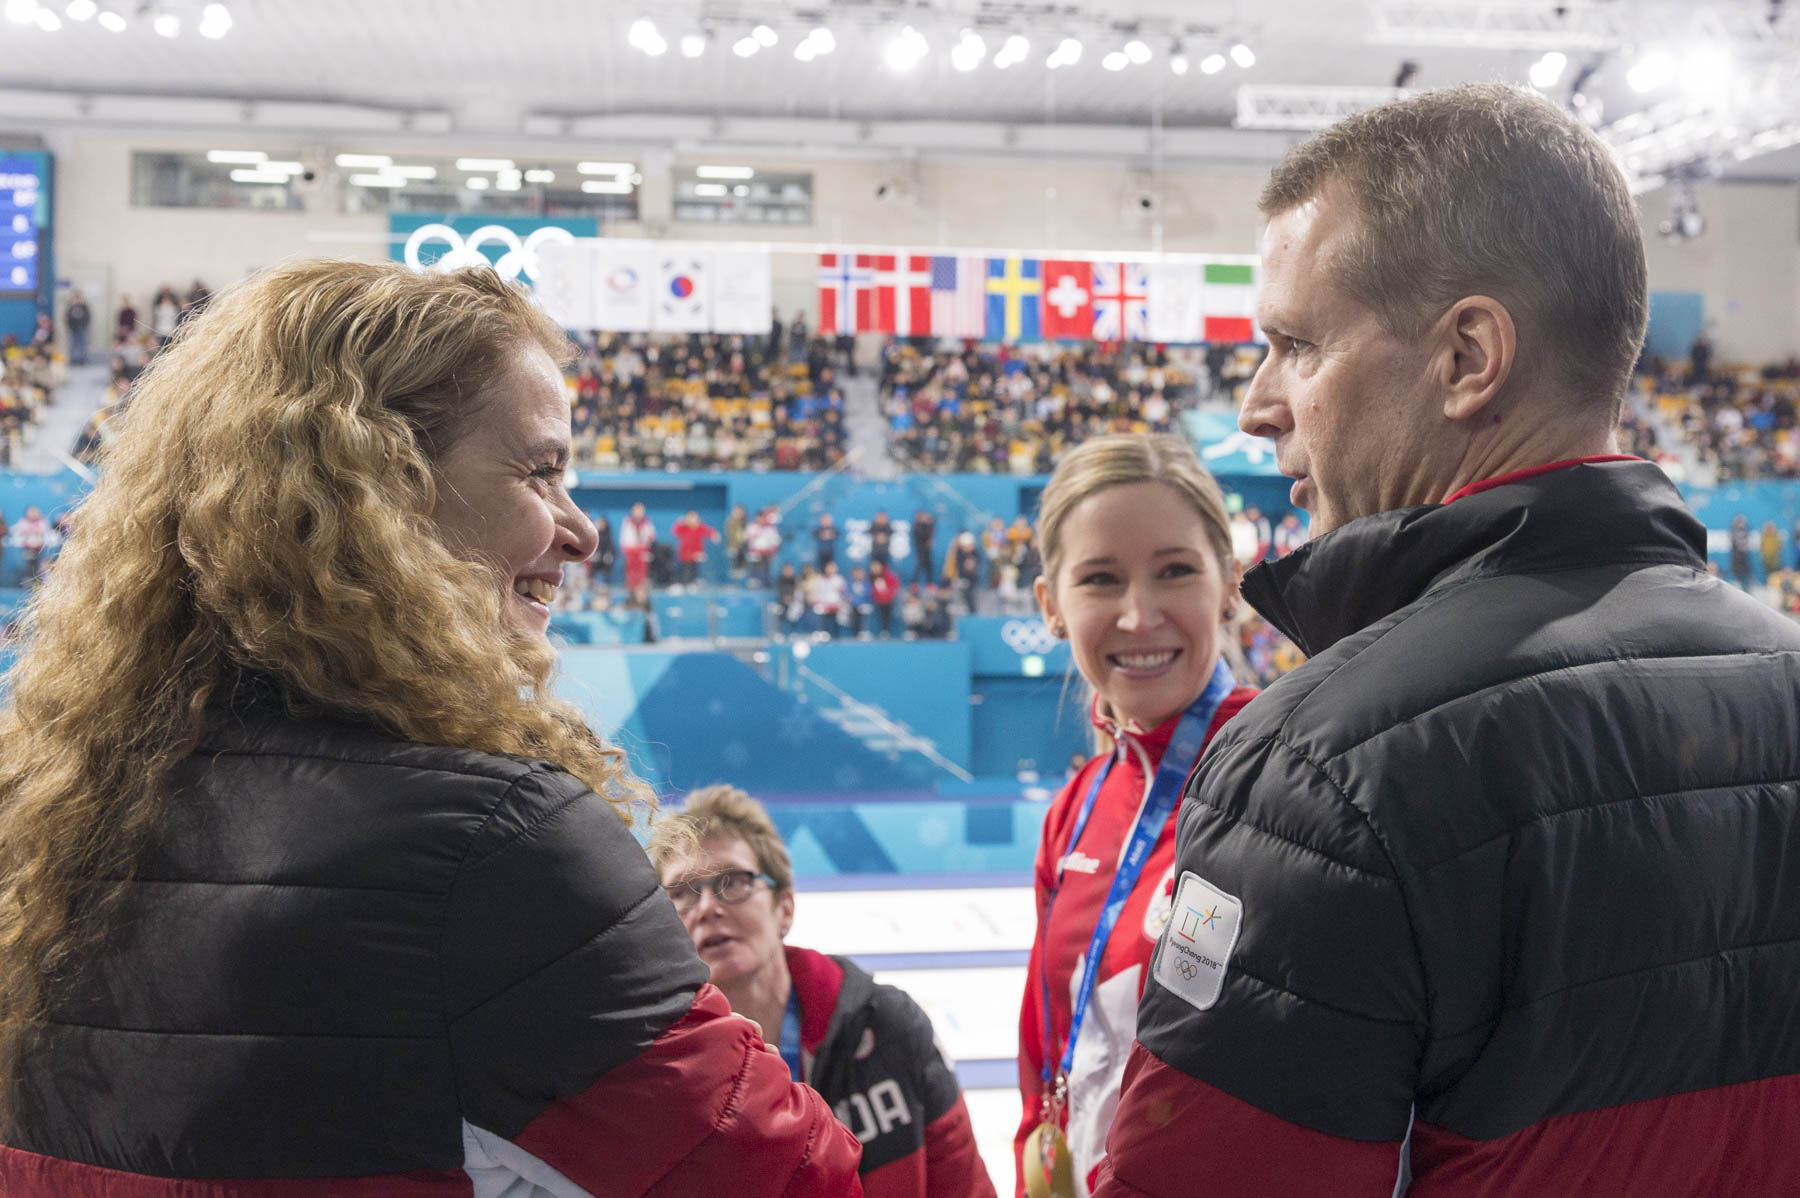 Following the game, Her Excellency met with Team Canada athletes' Kaitlyn Lawes and John Morris.